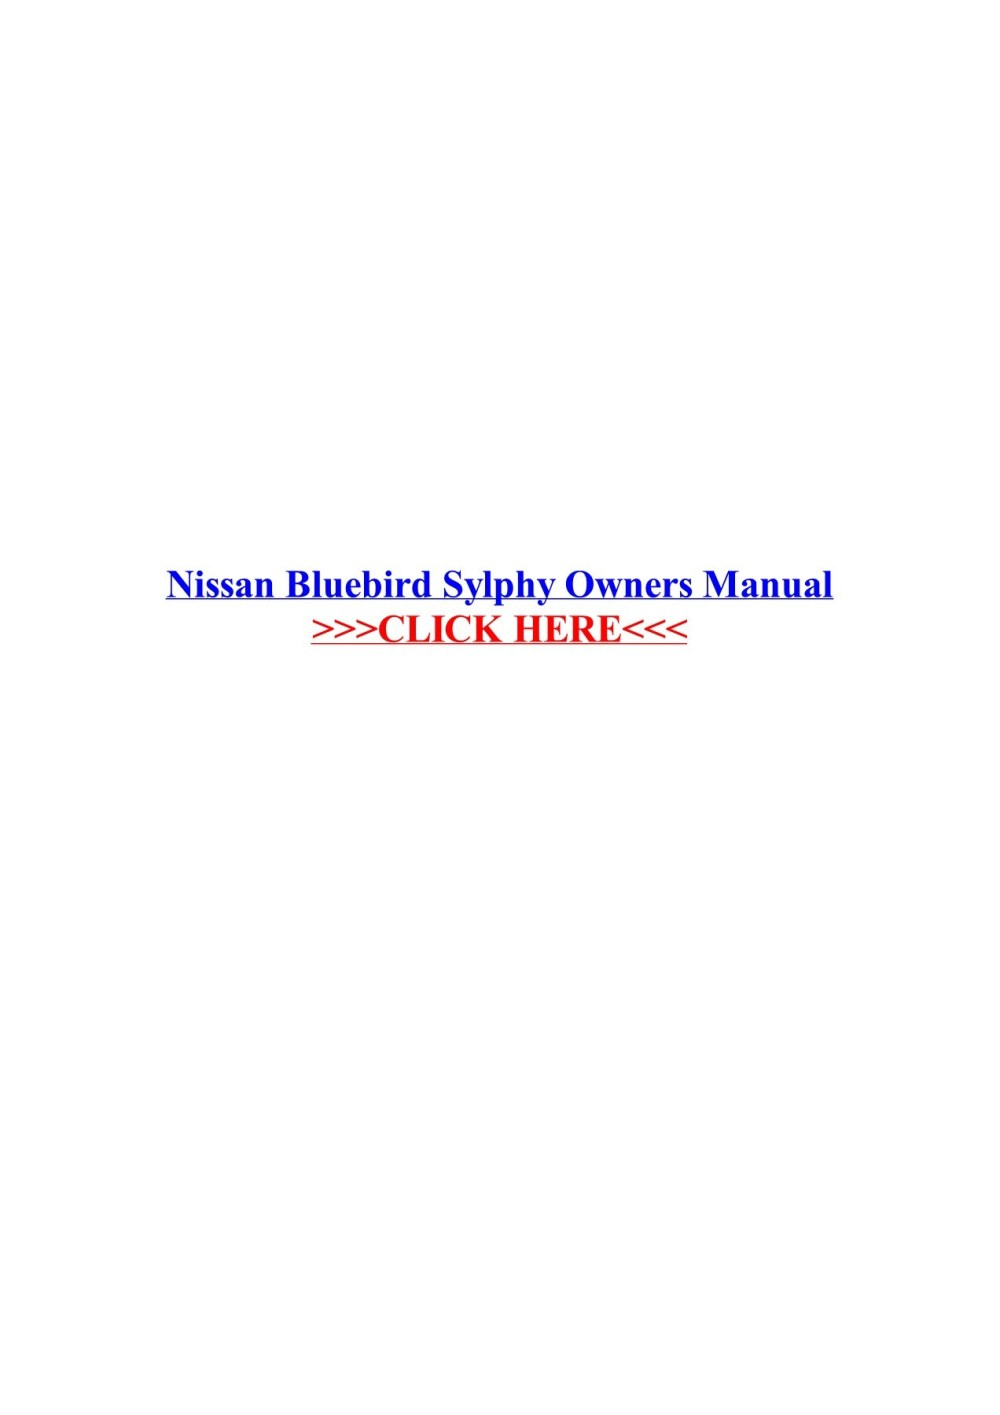 medium resolution of nissan bluebird sylphy owners manual veskolblacma pages 1 3 nissan bluebird turbo nissan bluebird sylphy wiring